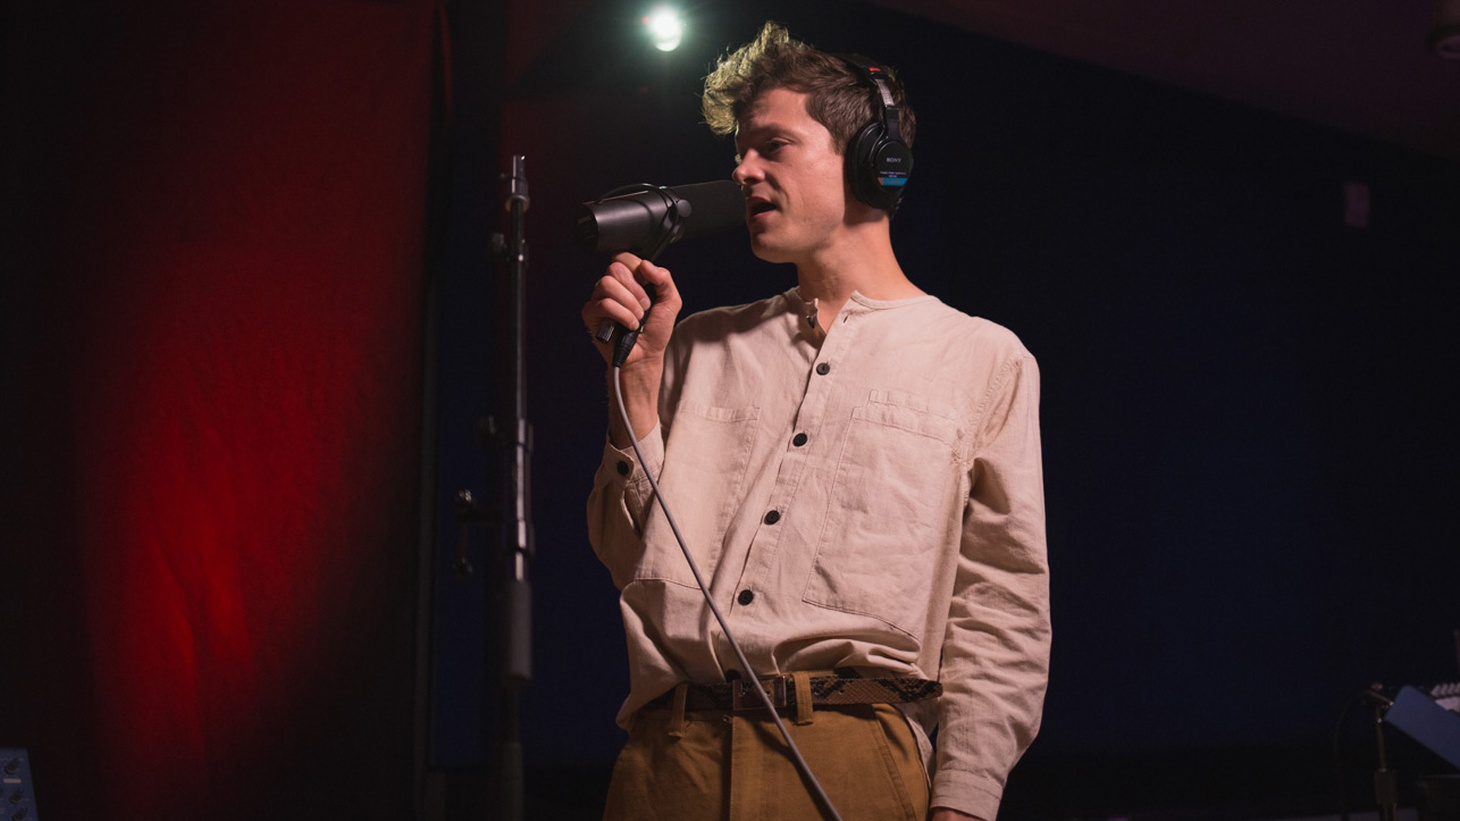 Seattle-based solo artist Mike Hadreas has been making music as Perfume Genius for almost a decade and his fourth album,No Shape,is his most fully realized yet.